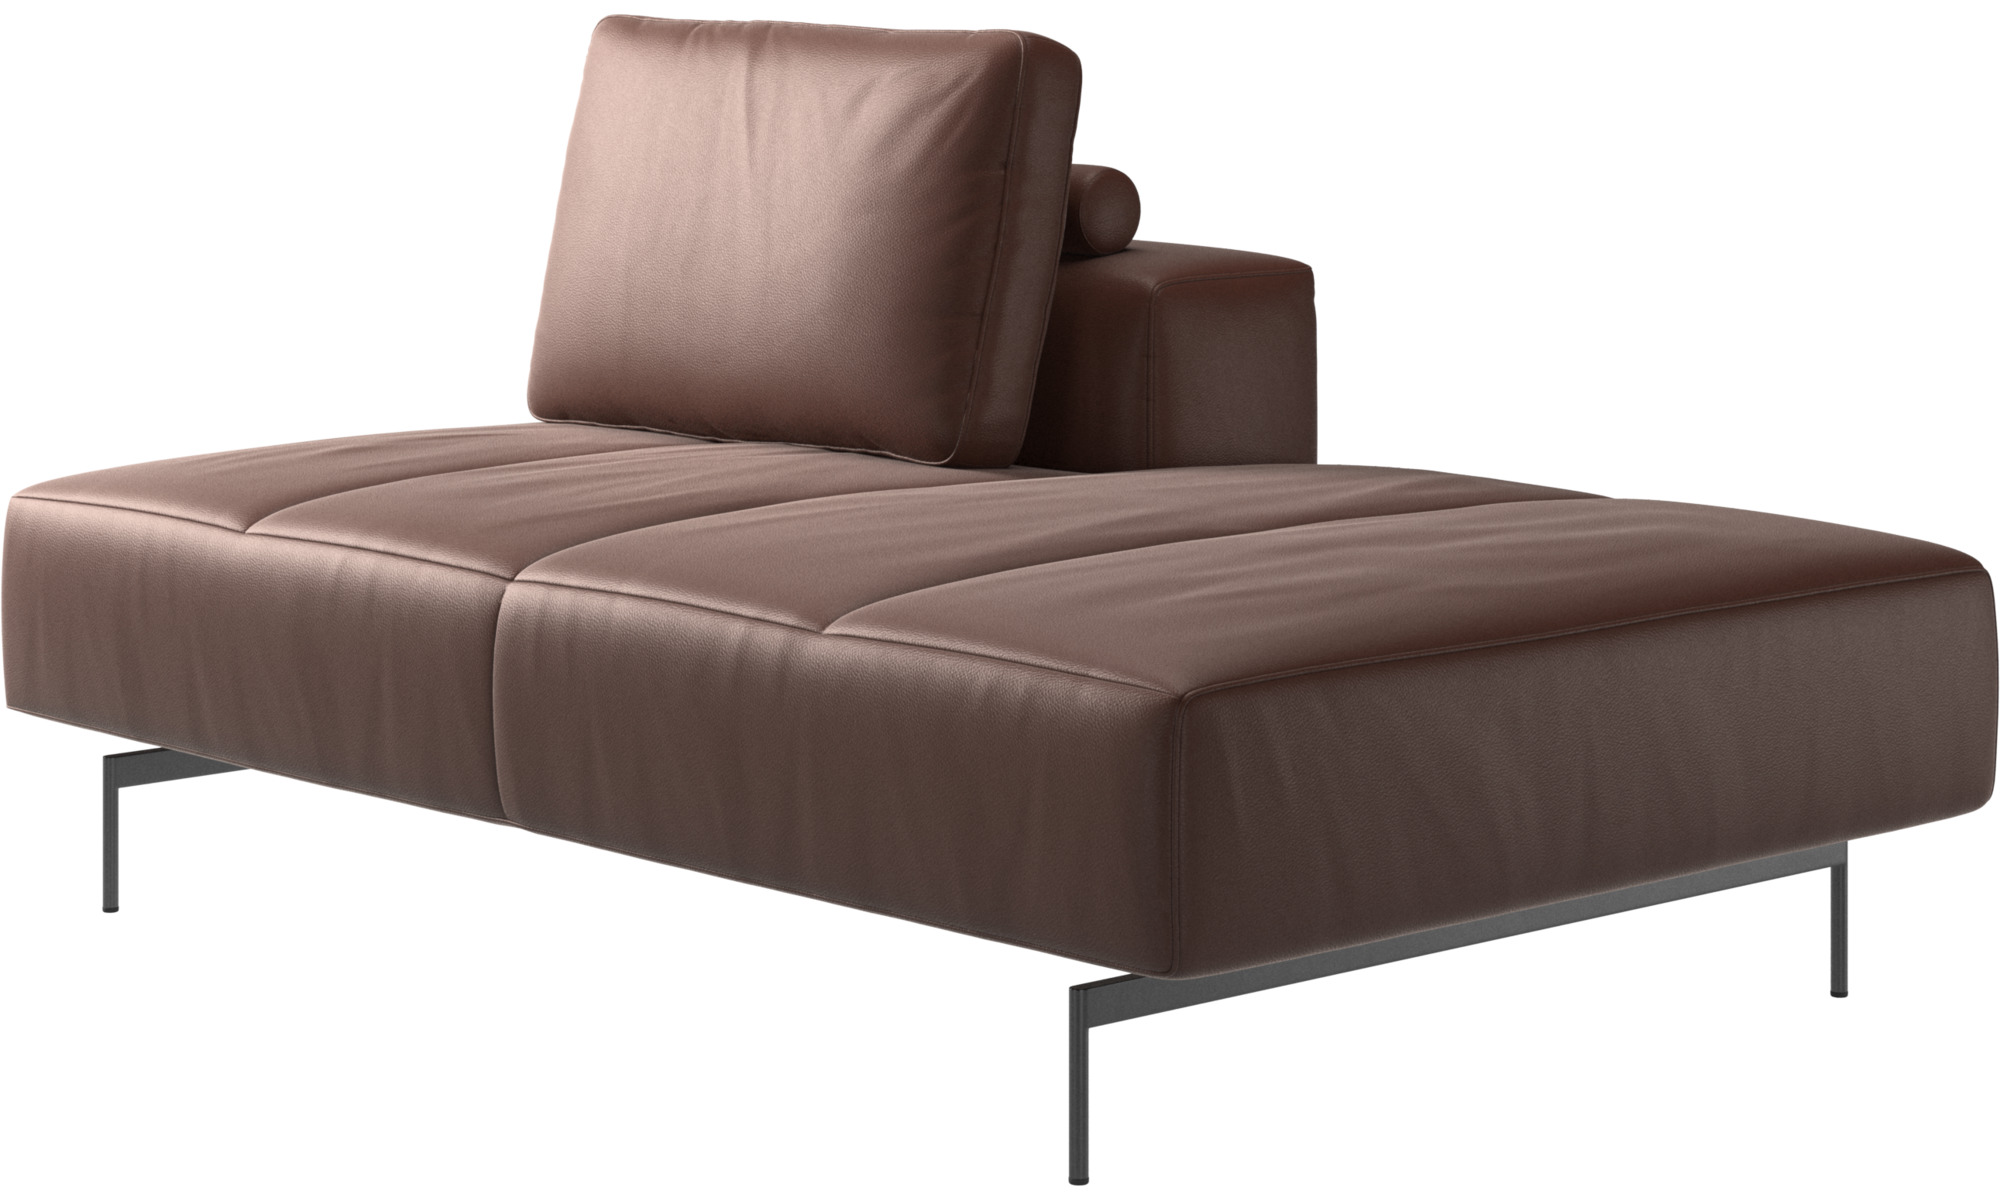 Modular Sofas Amsterdam Lounging Module For Sofa Small Armrest Right Brown Leather